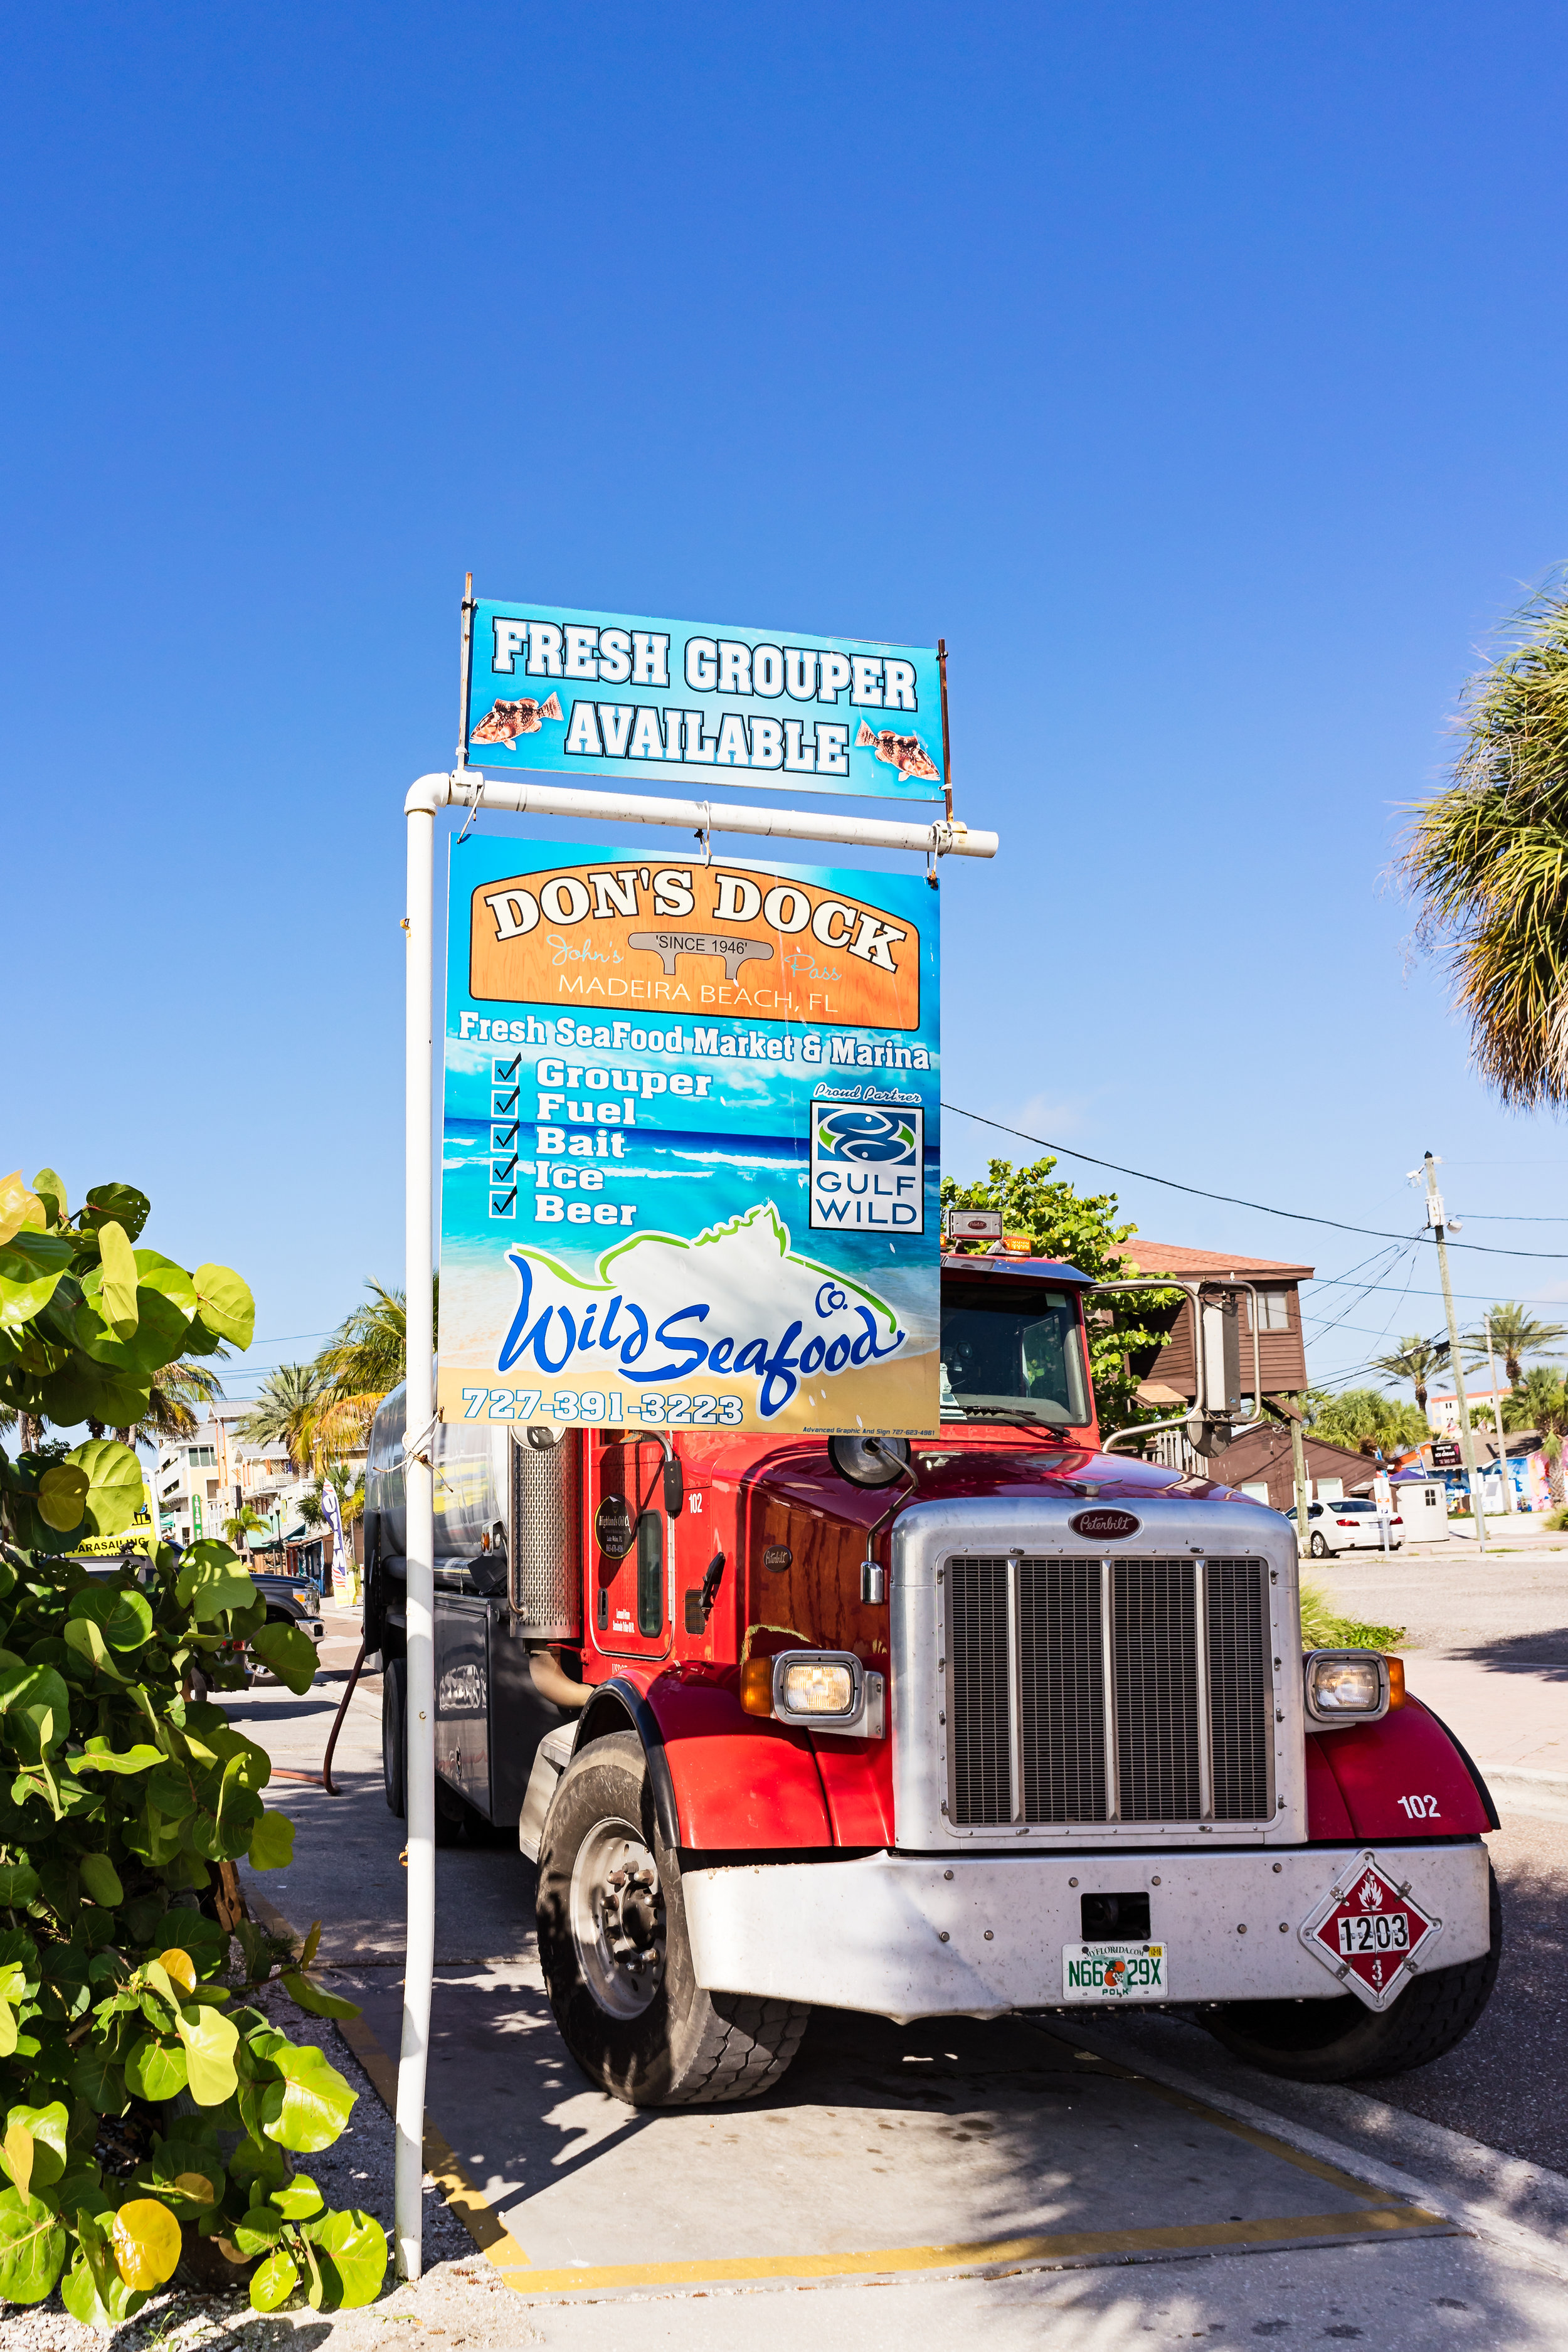 A fuel truck parked along side Don's Dock. Wild Seafood provides fuel for all boaters in the area.